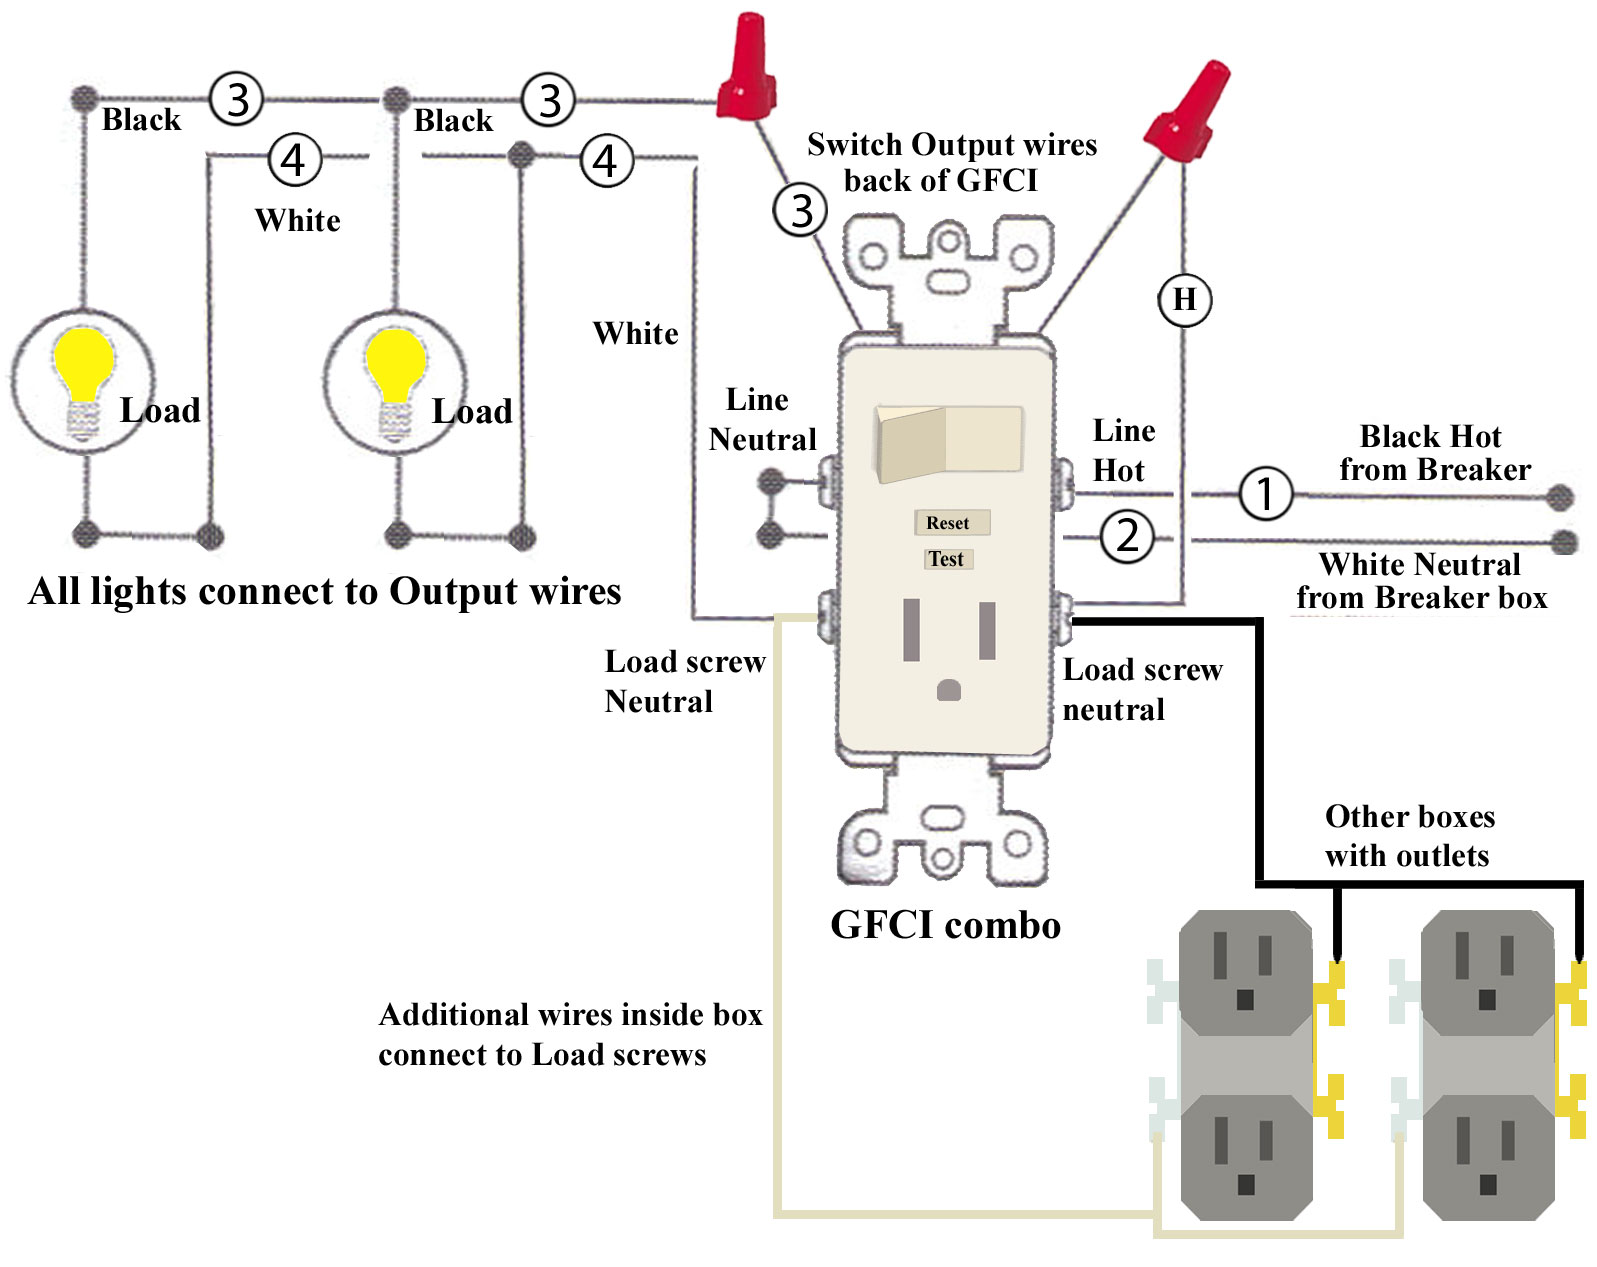 GFCI combo wiring3 update how to install and troubleshoot gfci GFCI Breaker Wiring Diagram at fashall.co